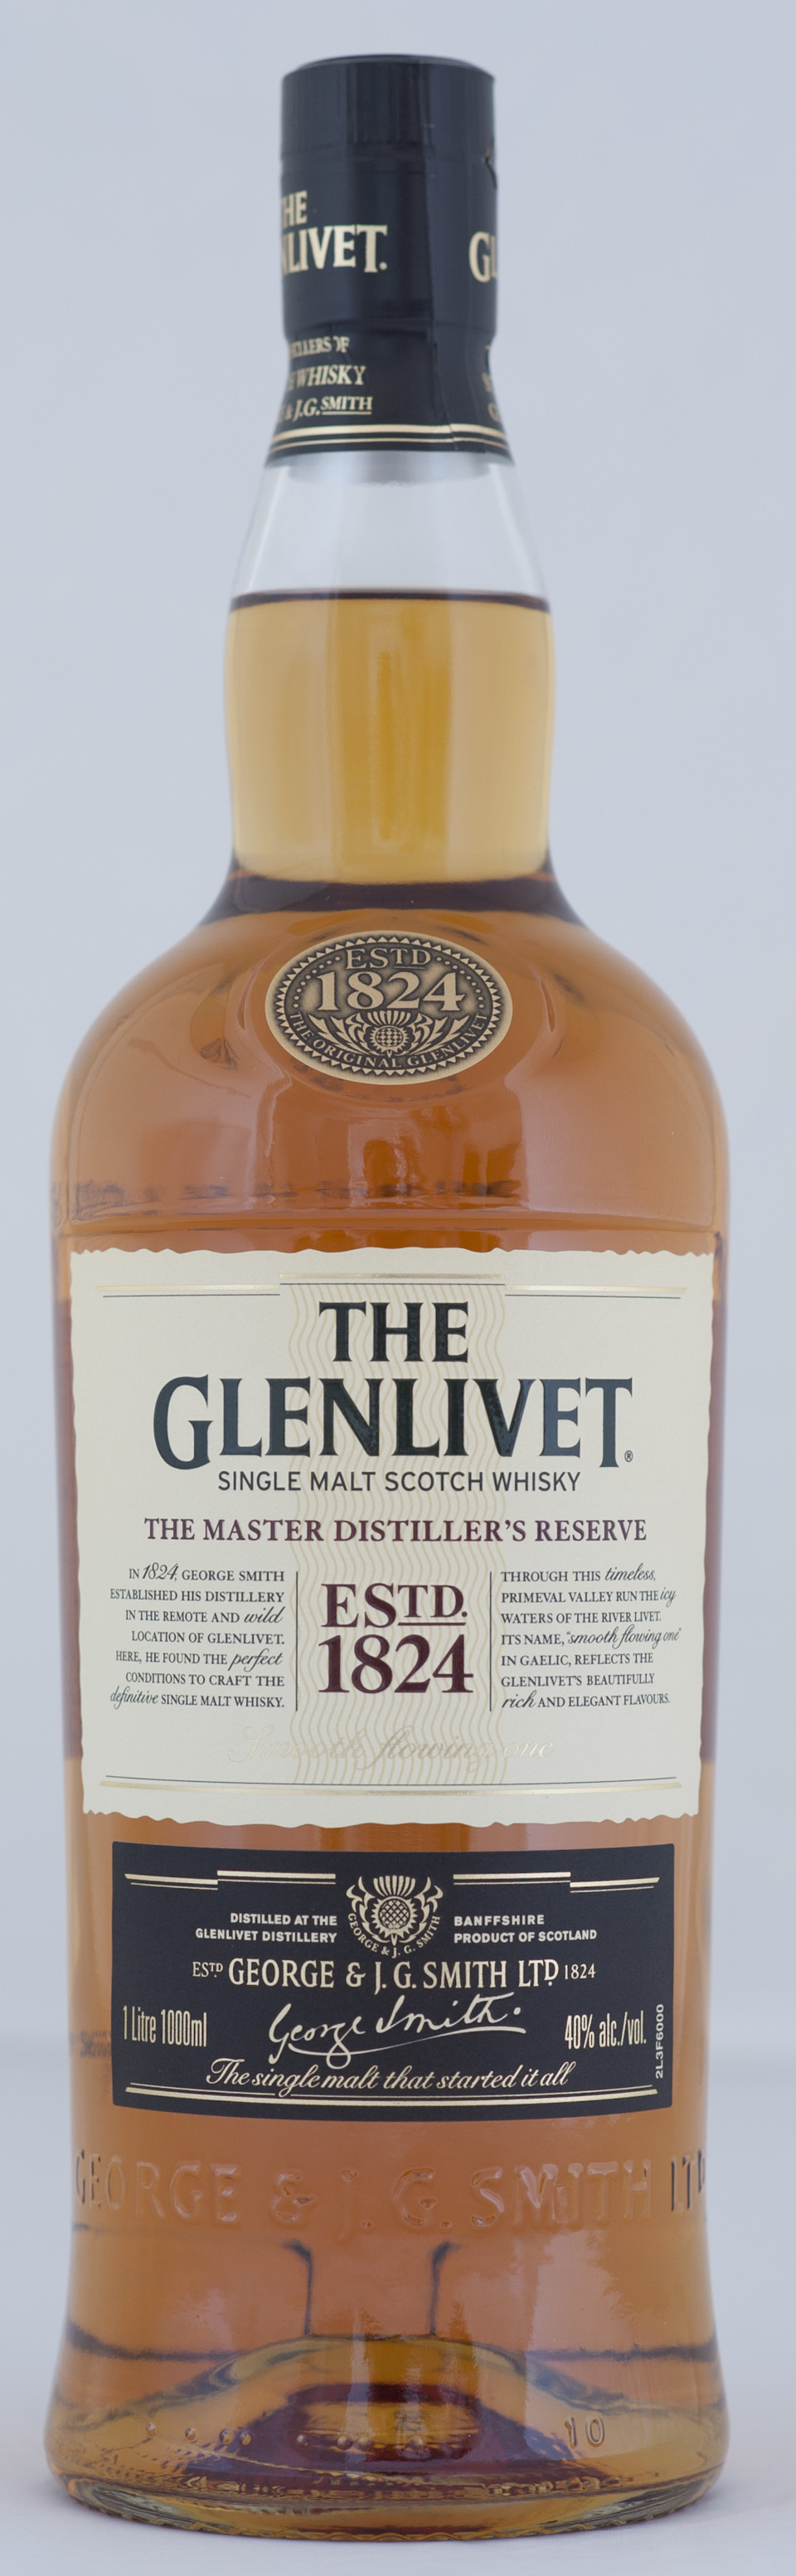 Billede: _DSC5603 The Glenlivet - The Master Distiller's Reserve - bottle.jpg